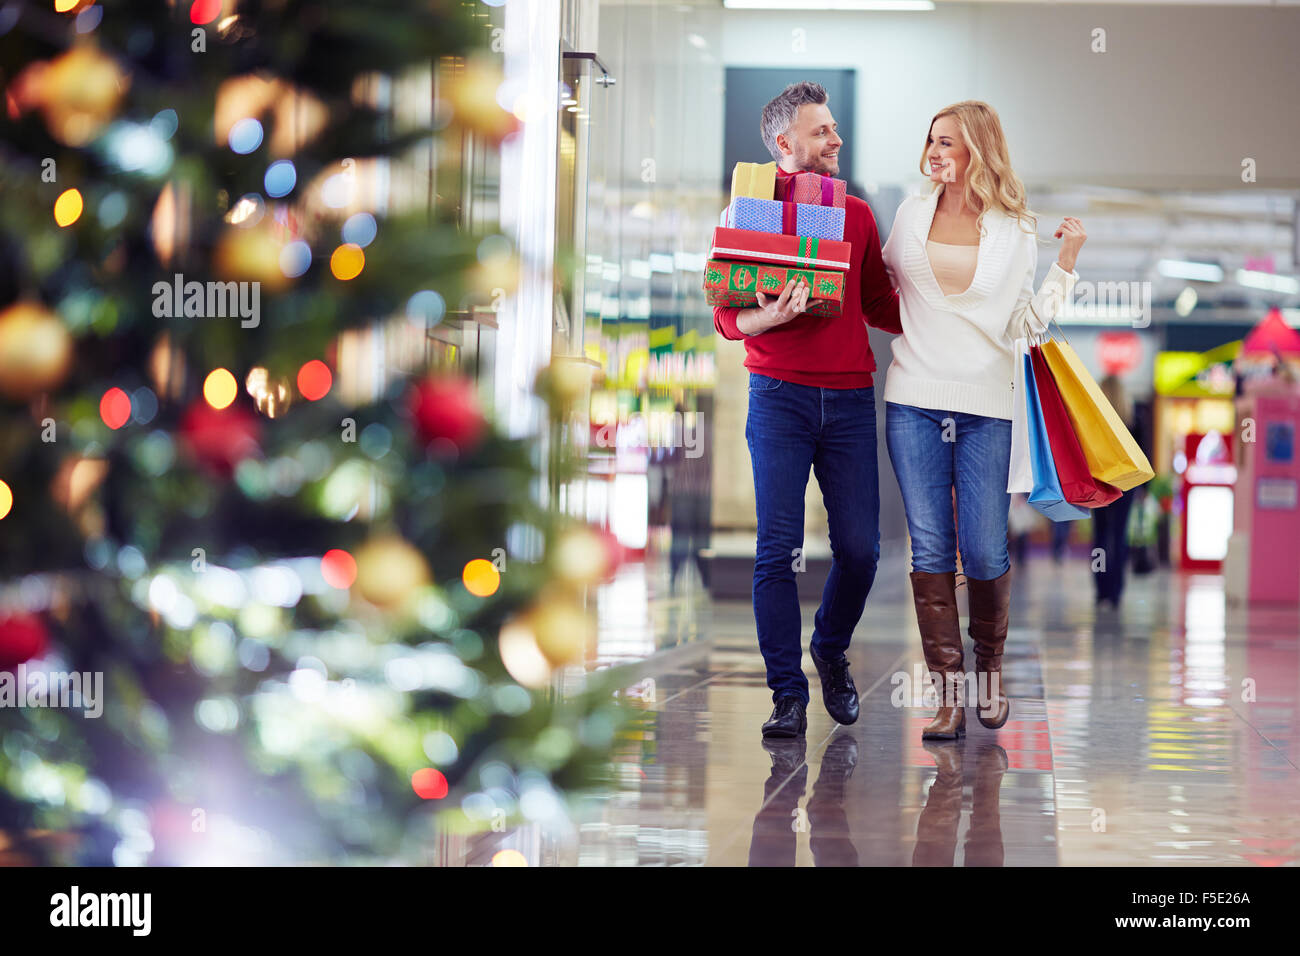 Affectionate couple buying Christmas presents in the mall - Stock Image